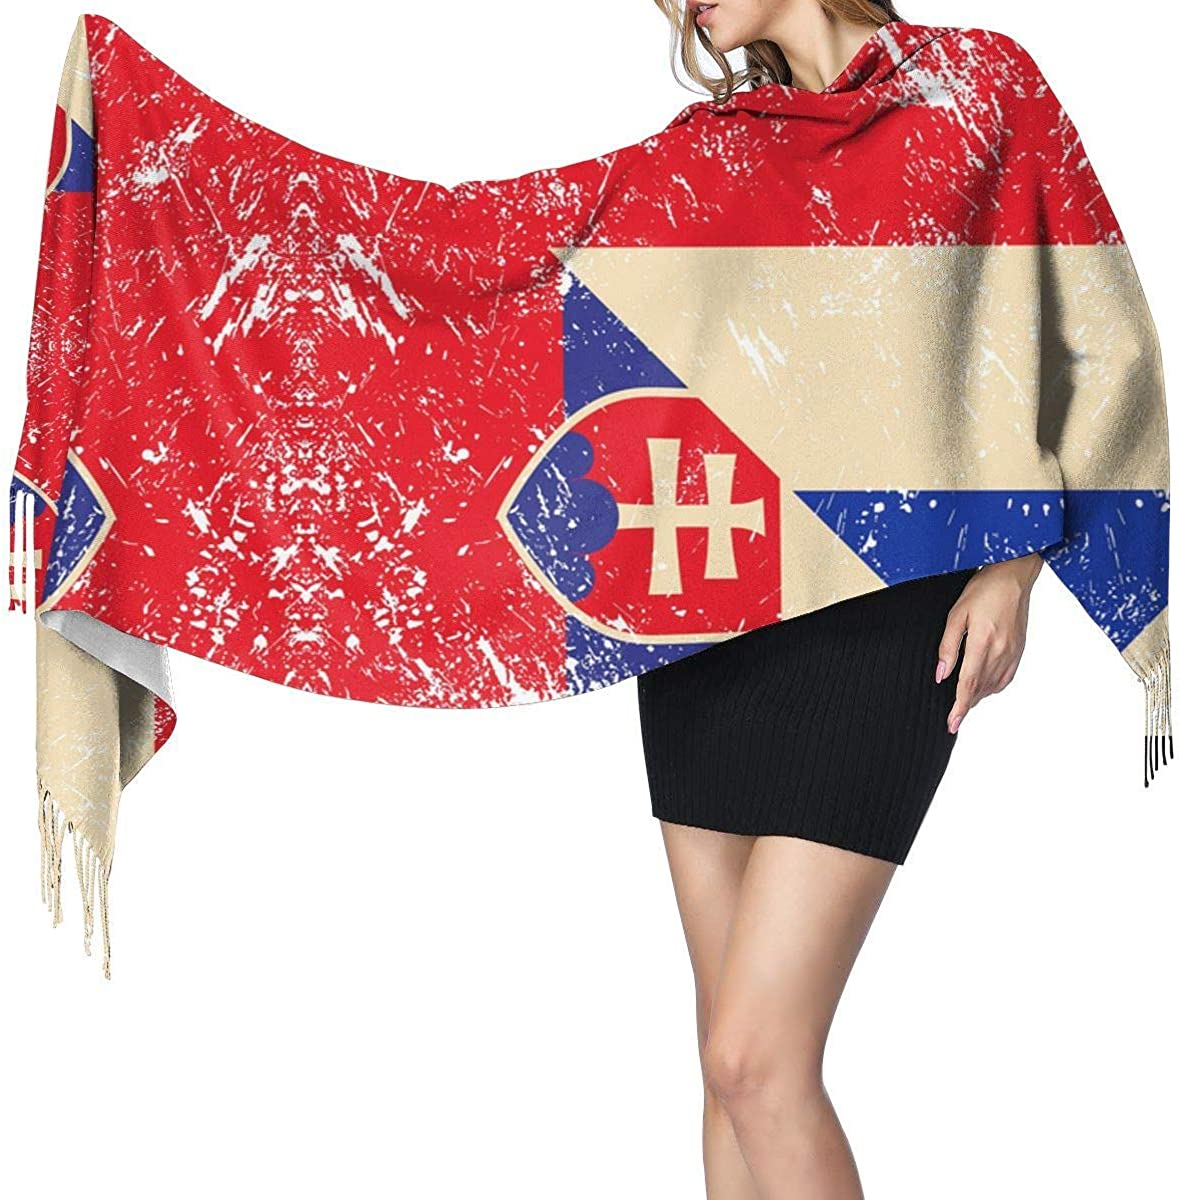 France and Slovenia Retro Flag Cashmere Scarf Shawl Wraps Super Soft Warm Tassel Scarves For Women Office Worker Travel